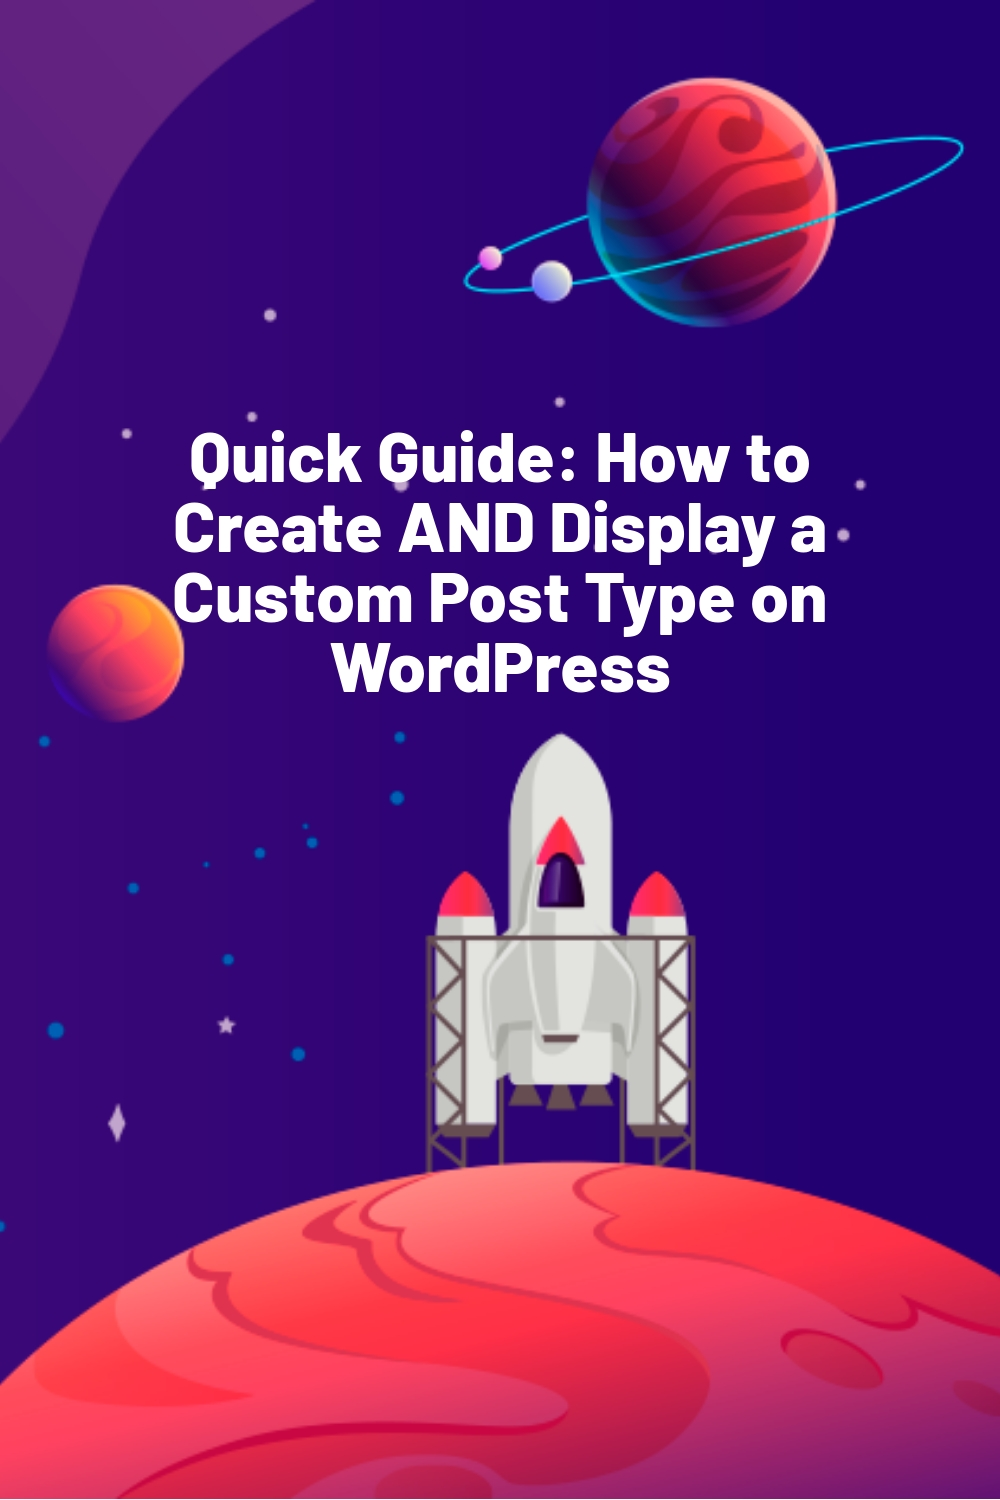 Quick Guide: How to Create AND Display a Custom Post Type on WordPress